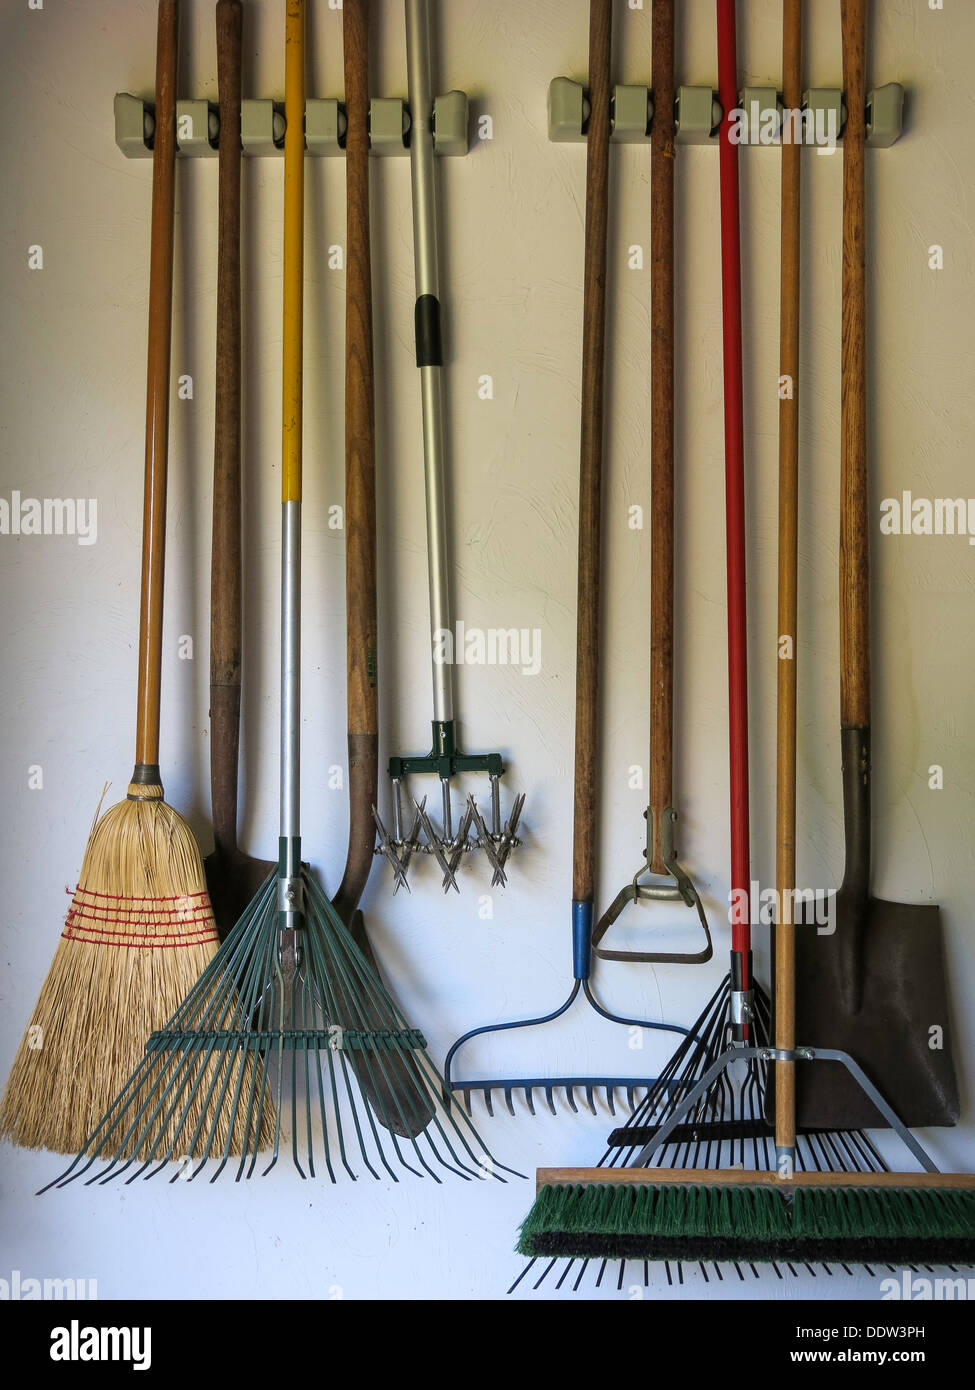 Lawn and garden tools hanging in garage usa stock photo for Lawn and garden implements